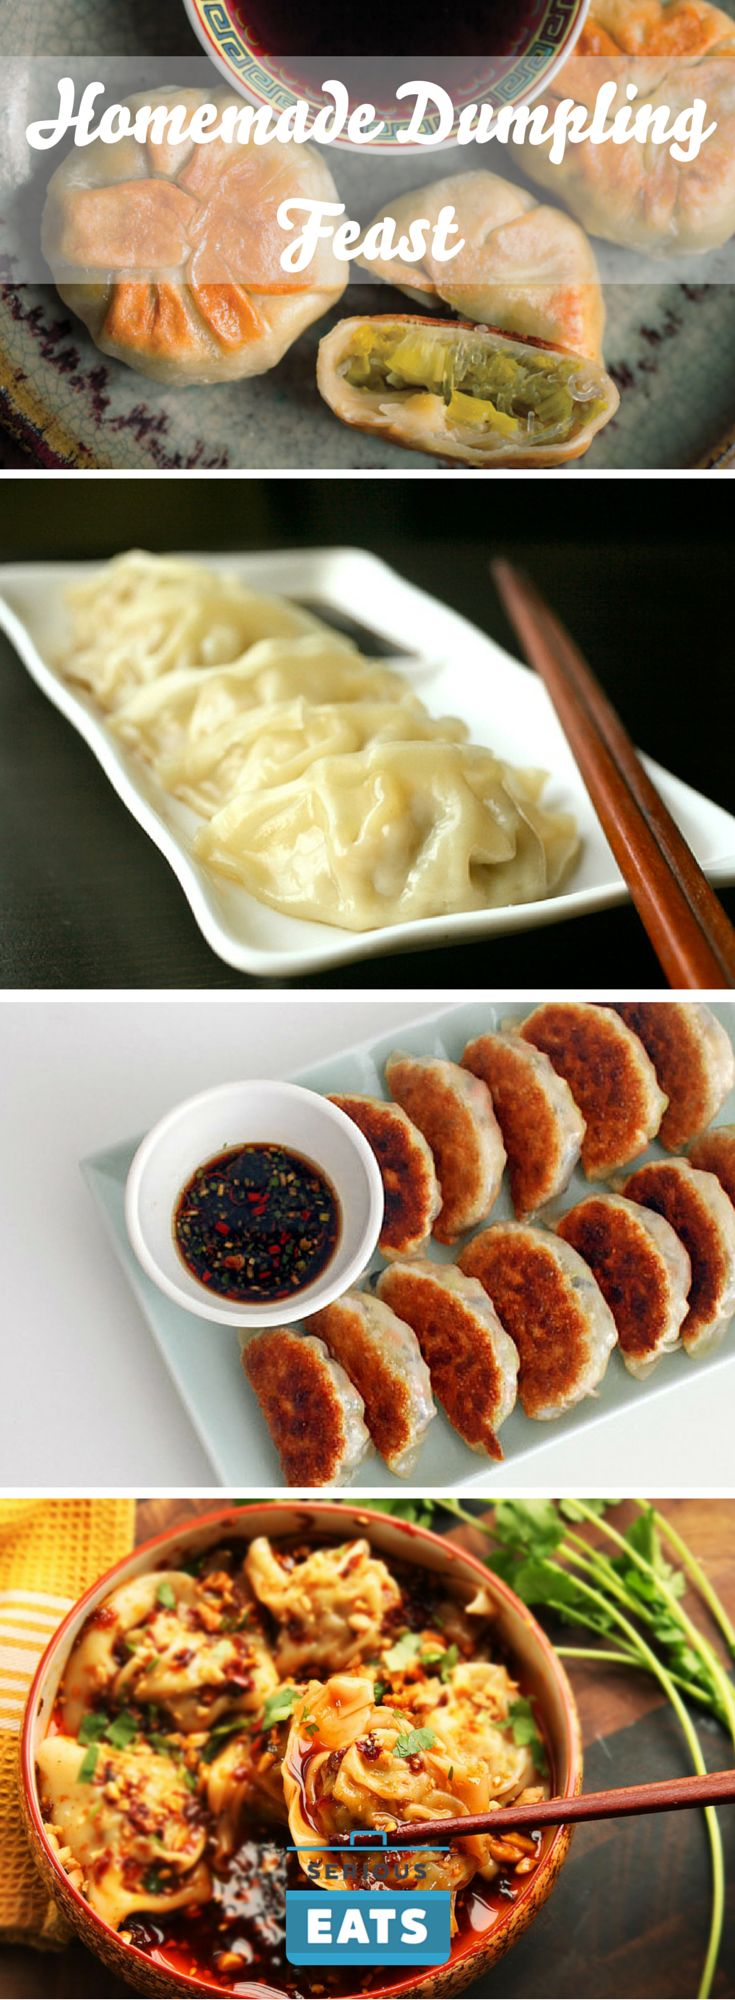 Love dumplings? We have your cravings covered.